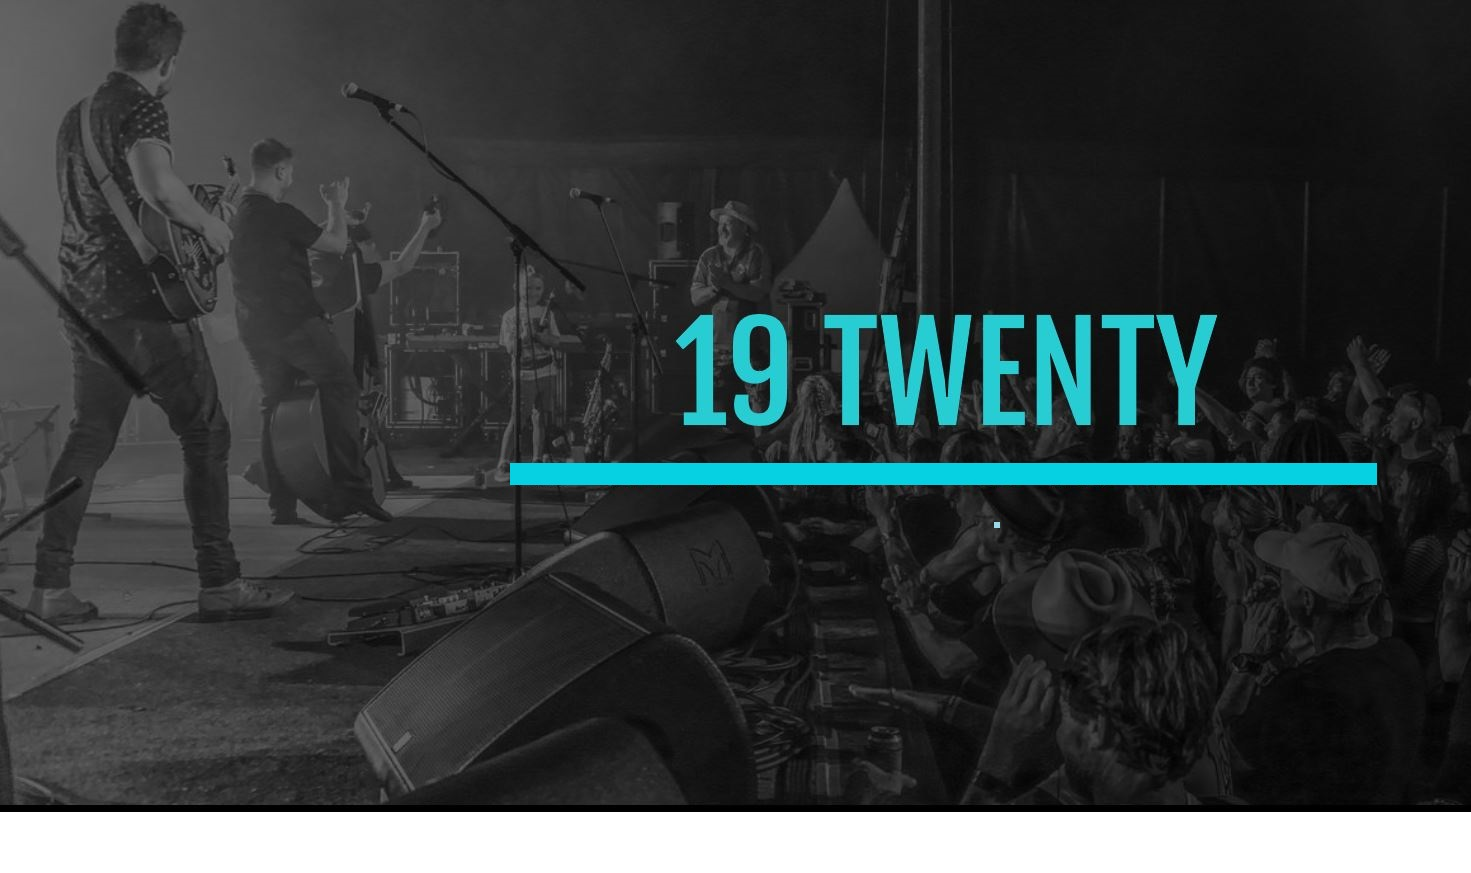 19 Twenty – Saturday Jun 1st (TBC) 7PM